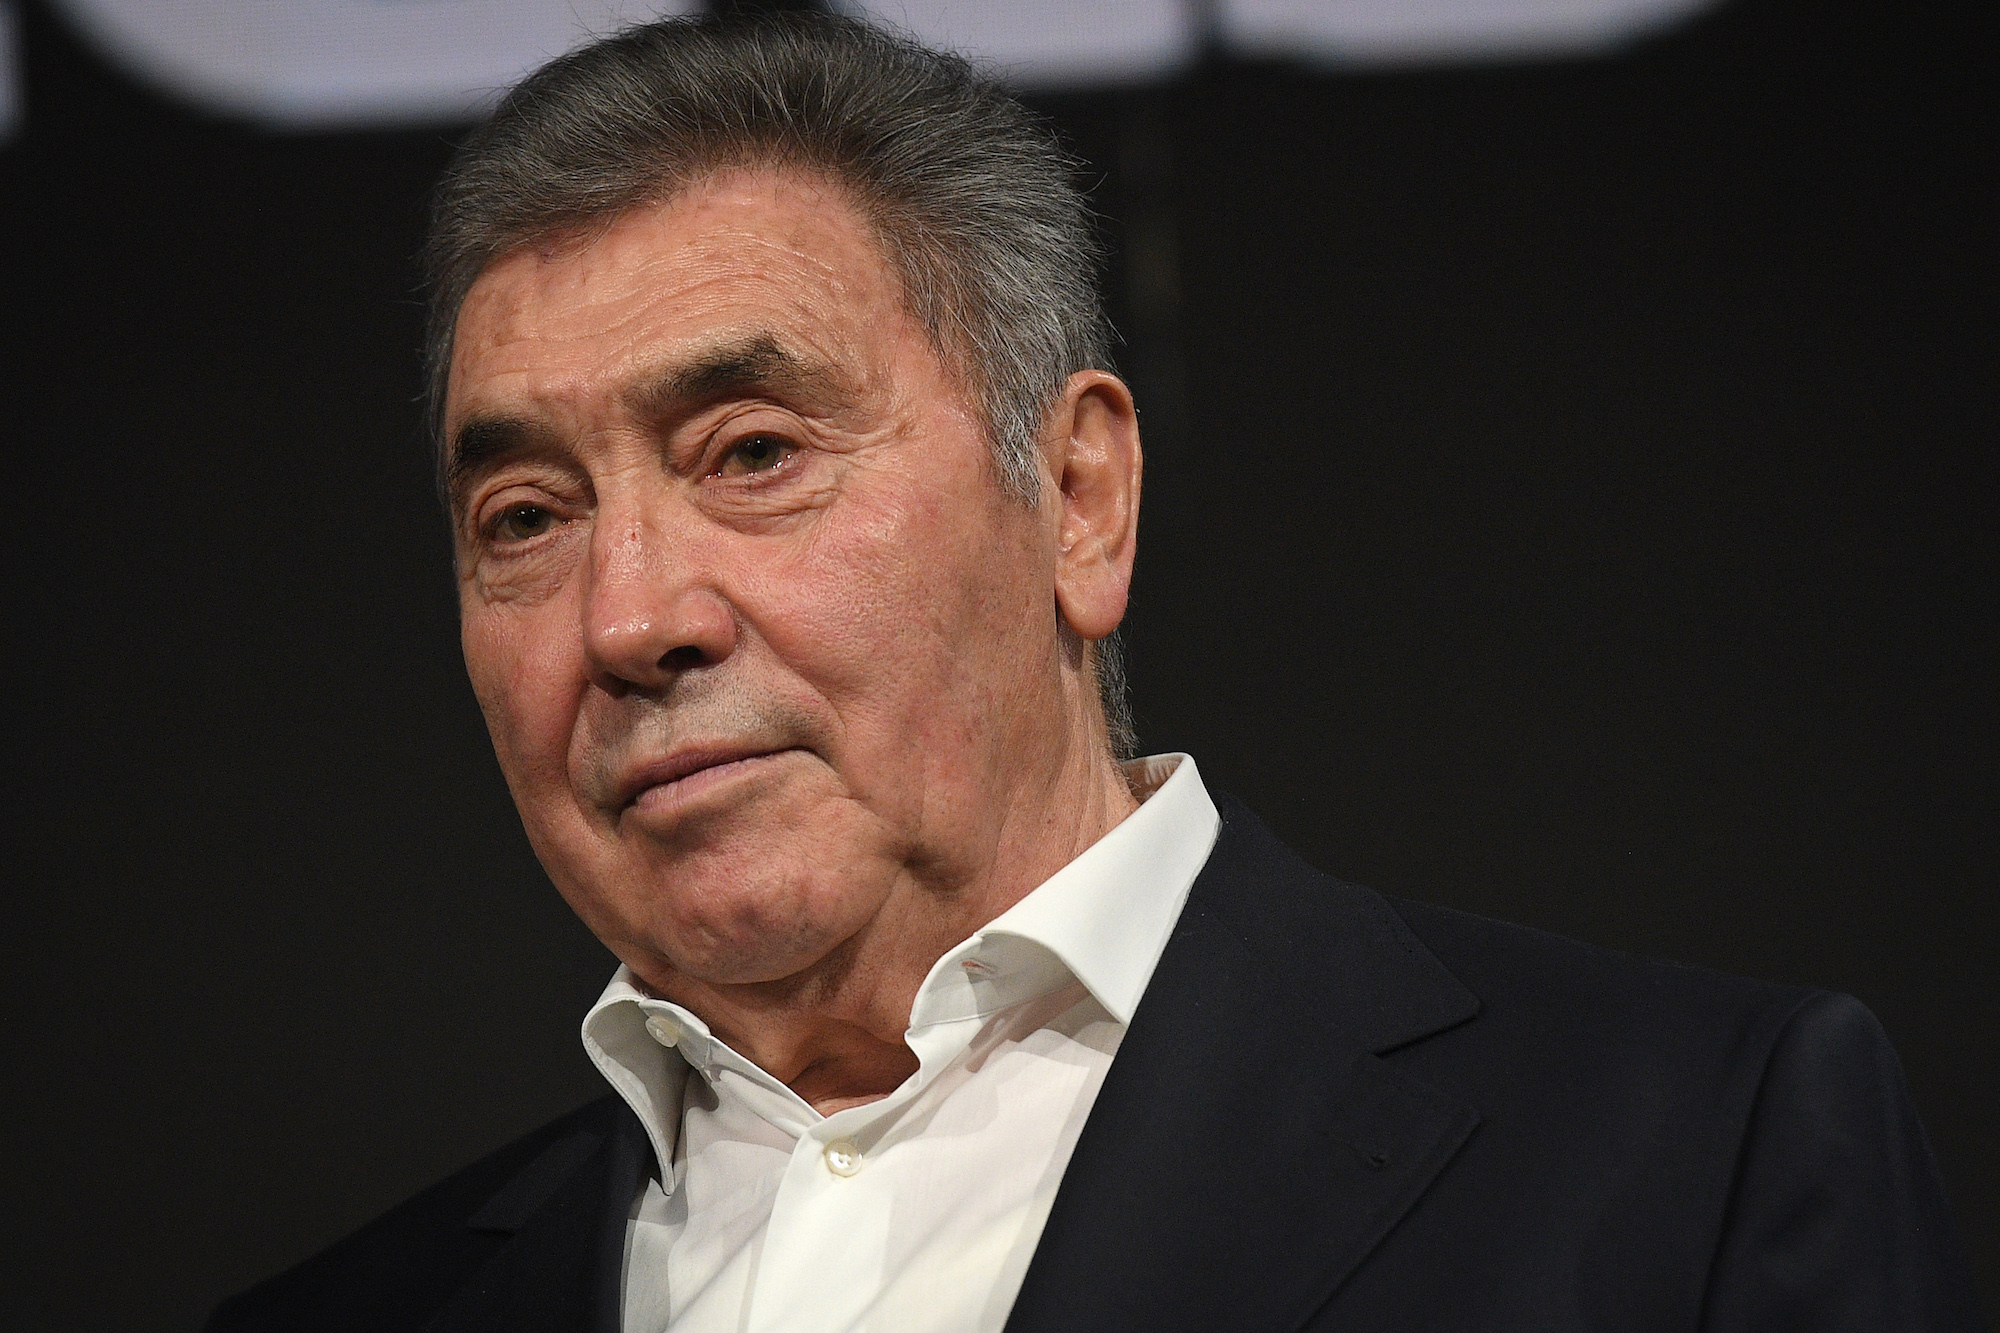 'Doctors don't know what happened' as Eddy Merckx continues recovery from fall